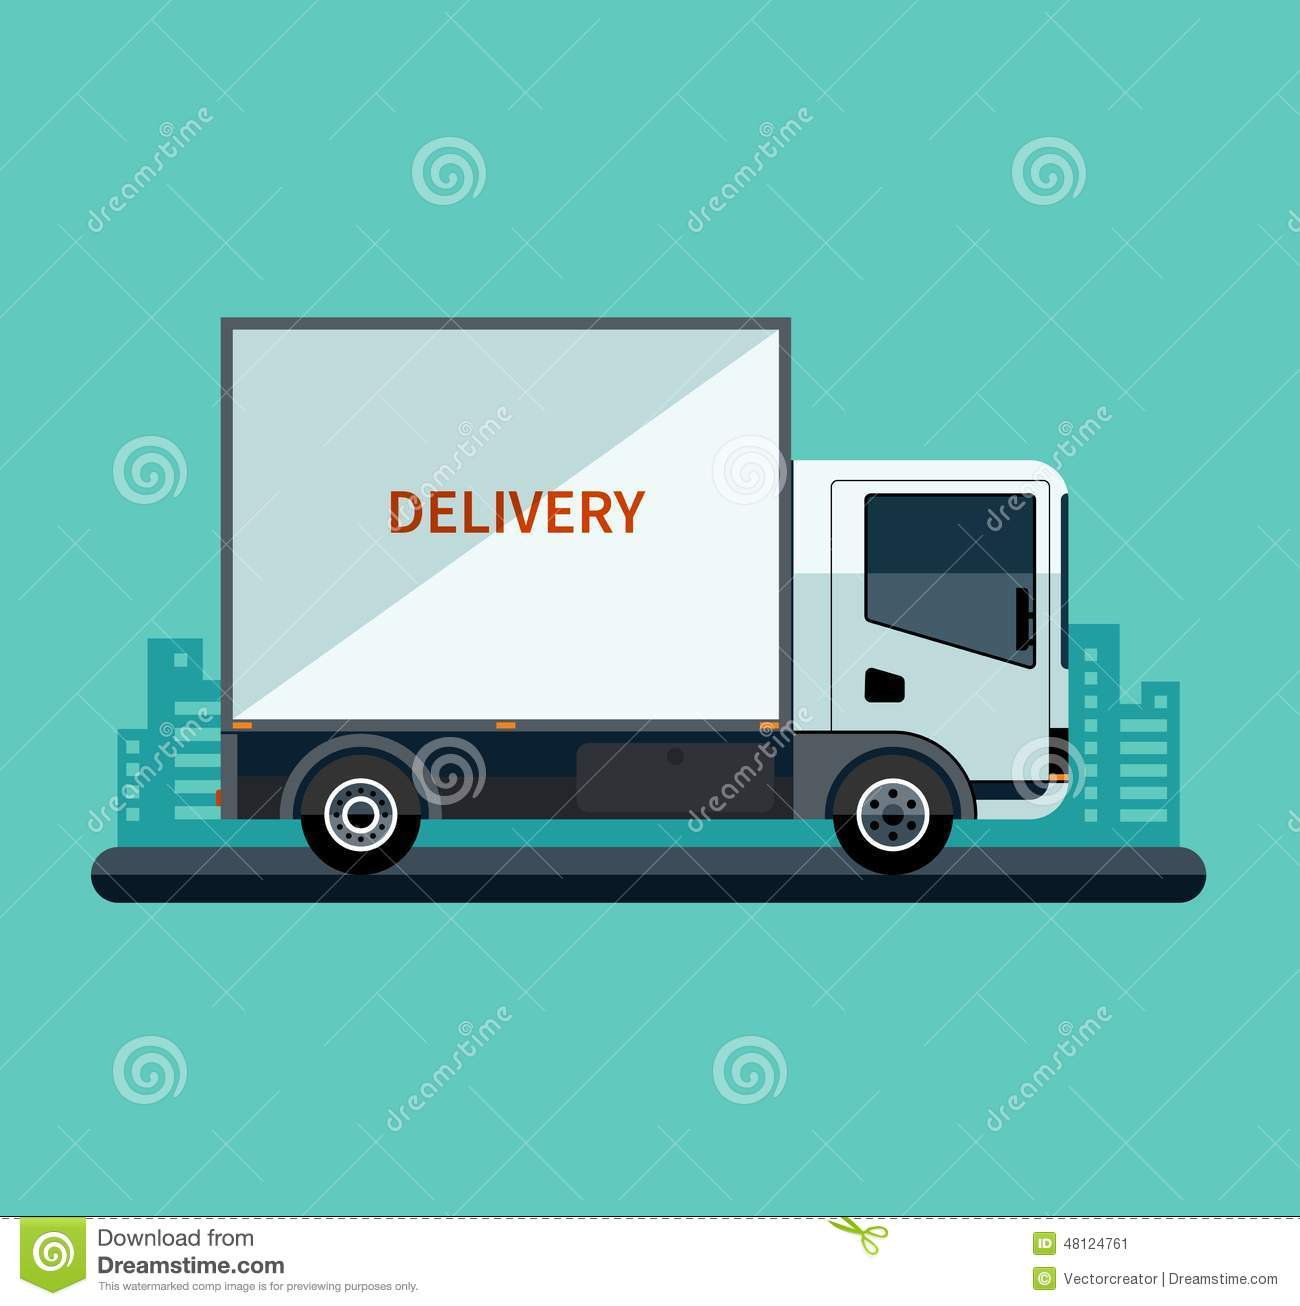 delivery truck vector - photo #19